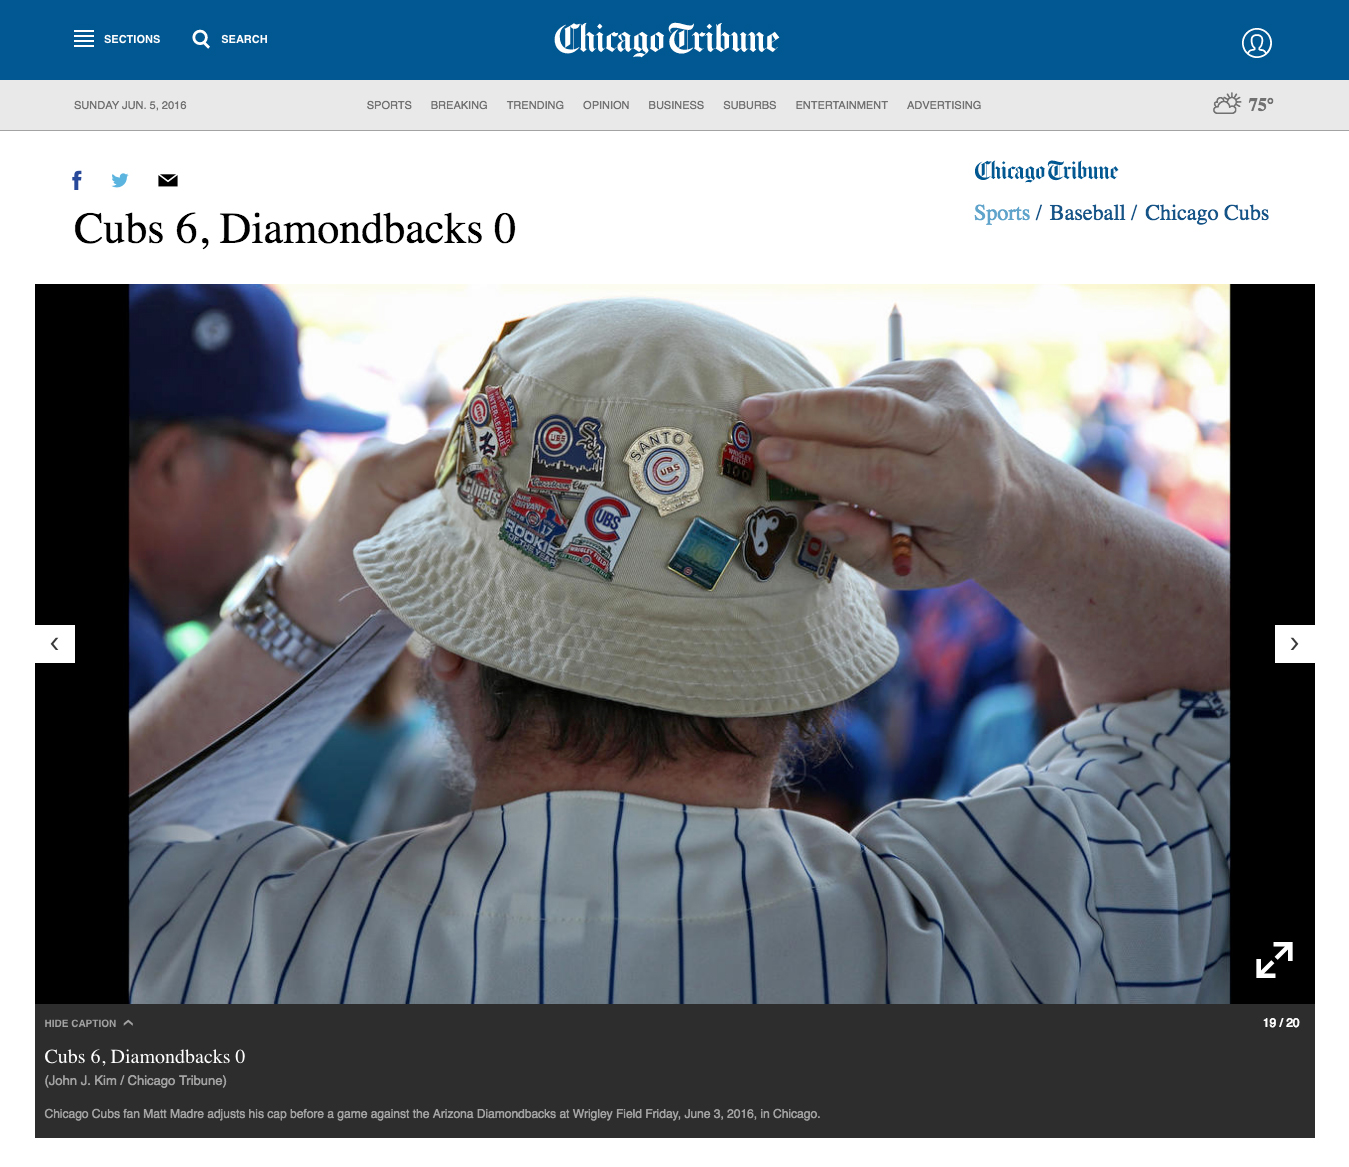 Cubs Floppy Hat: My Dad's Cubs Hat Featured In The Chicago Tribune